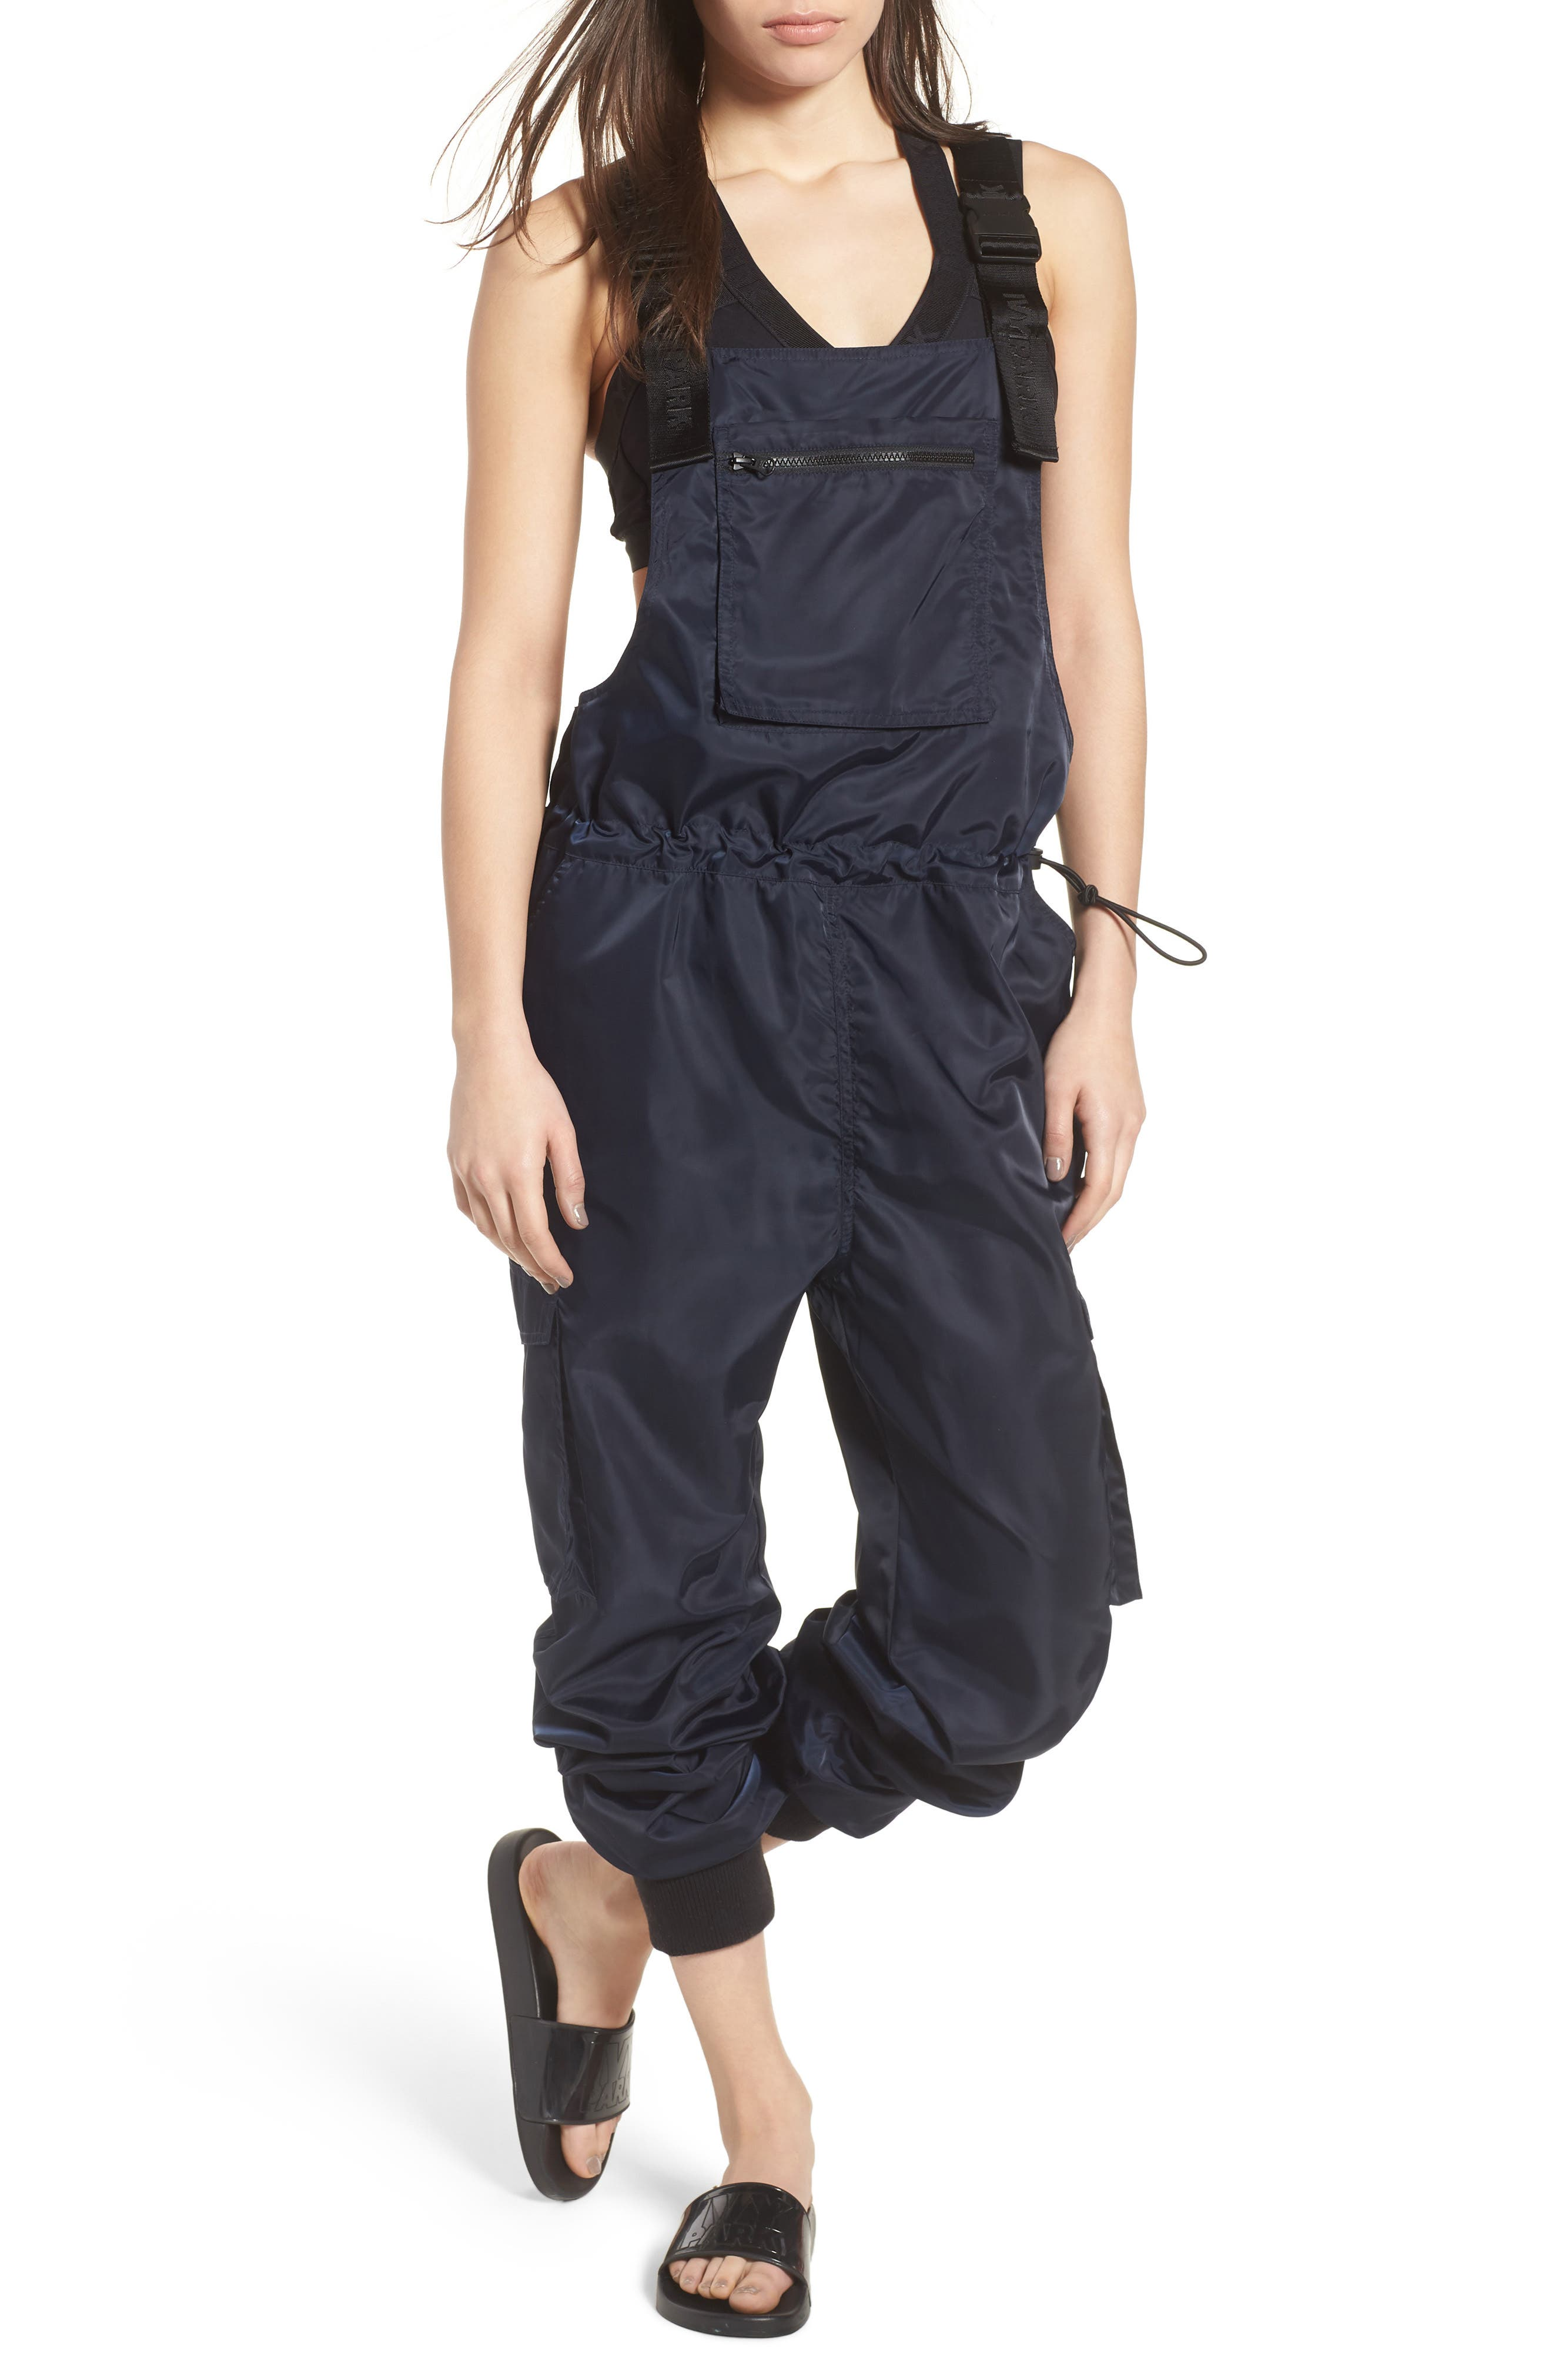 IVY PARK® Harness Overalls